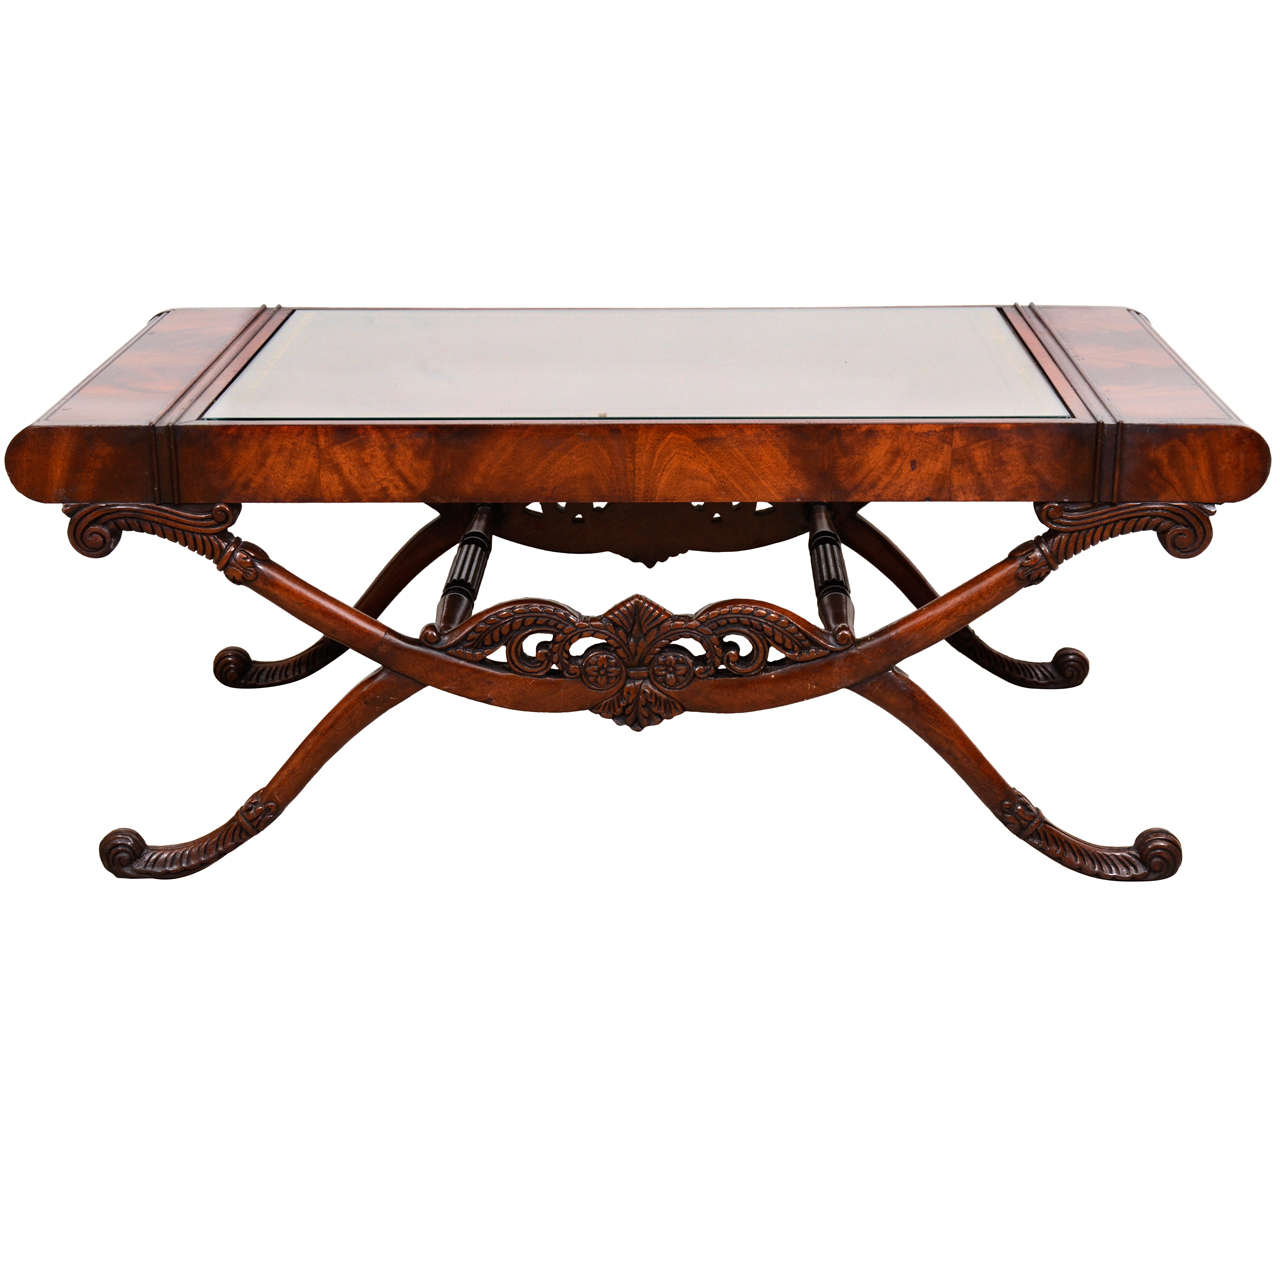 regency style mahogany and leather top coffee table at 1stdibs